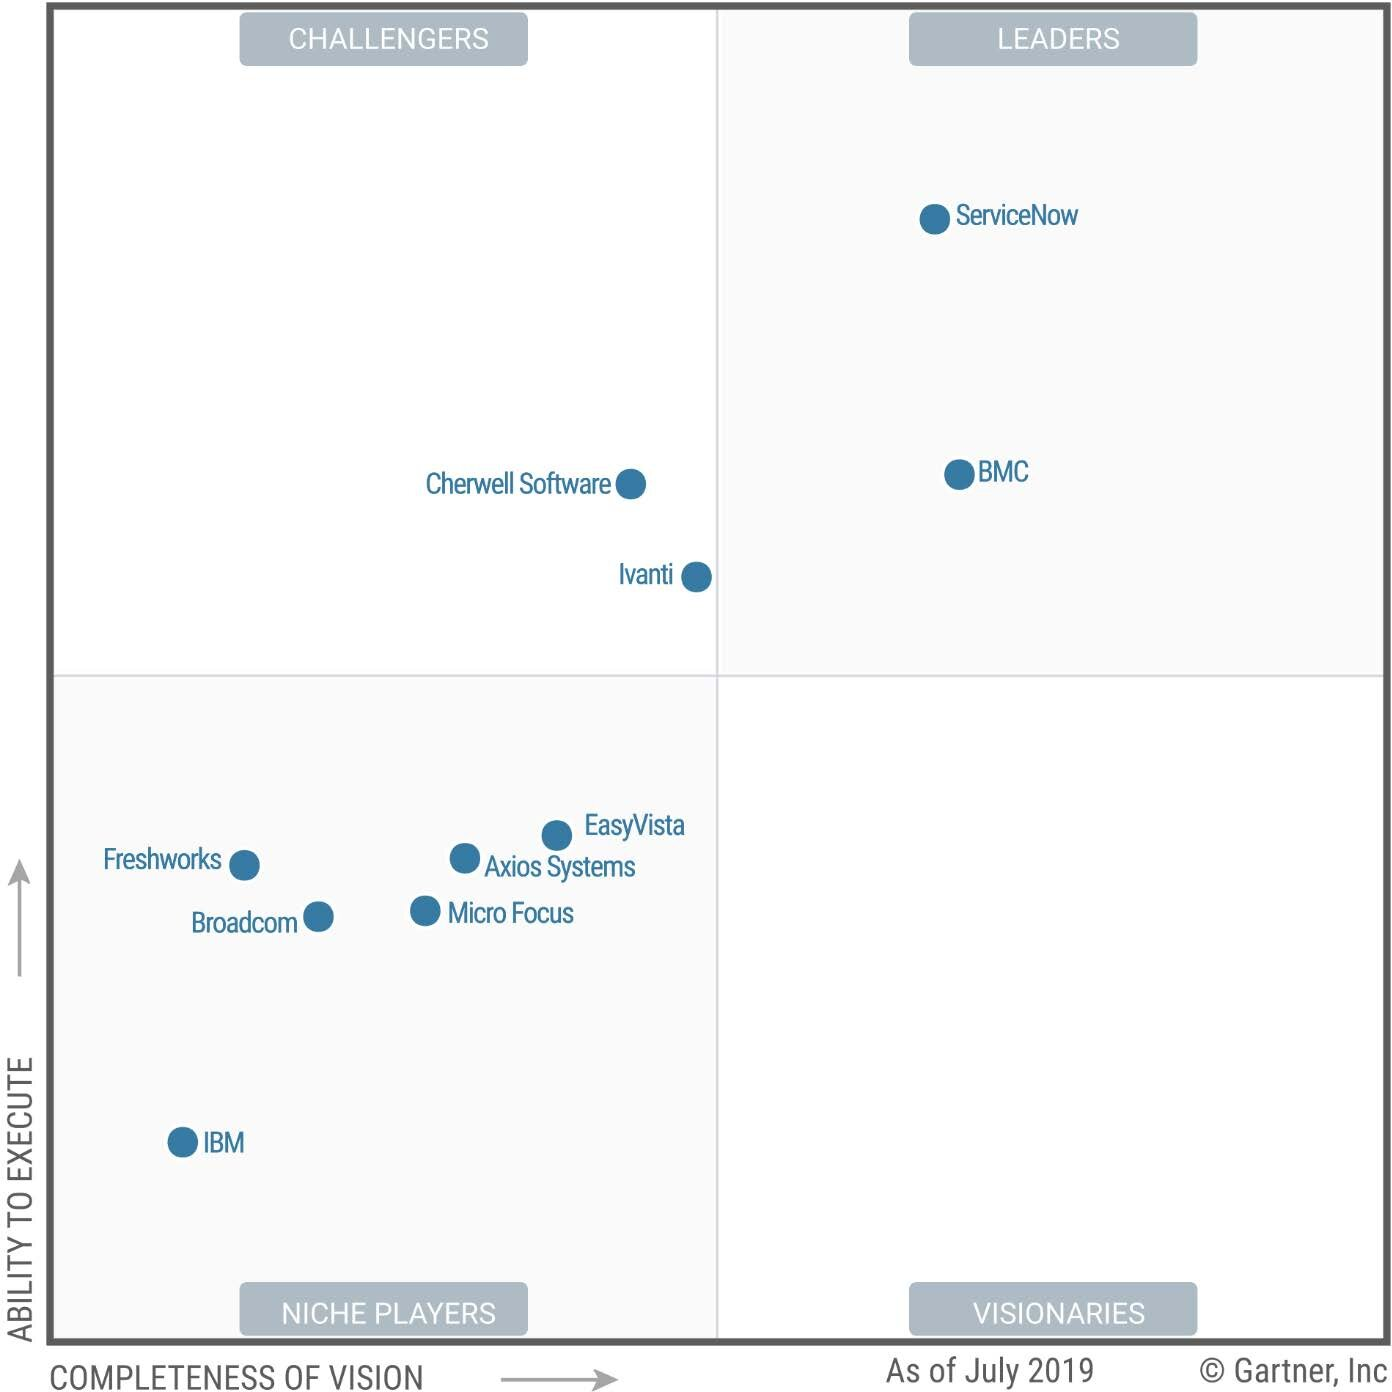 190829 - Gartner Magic Quadrant for IT Service Management Tools.jpg